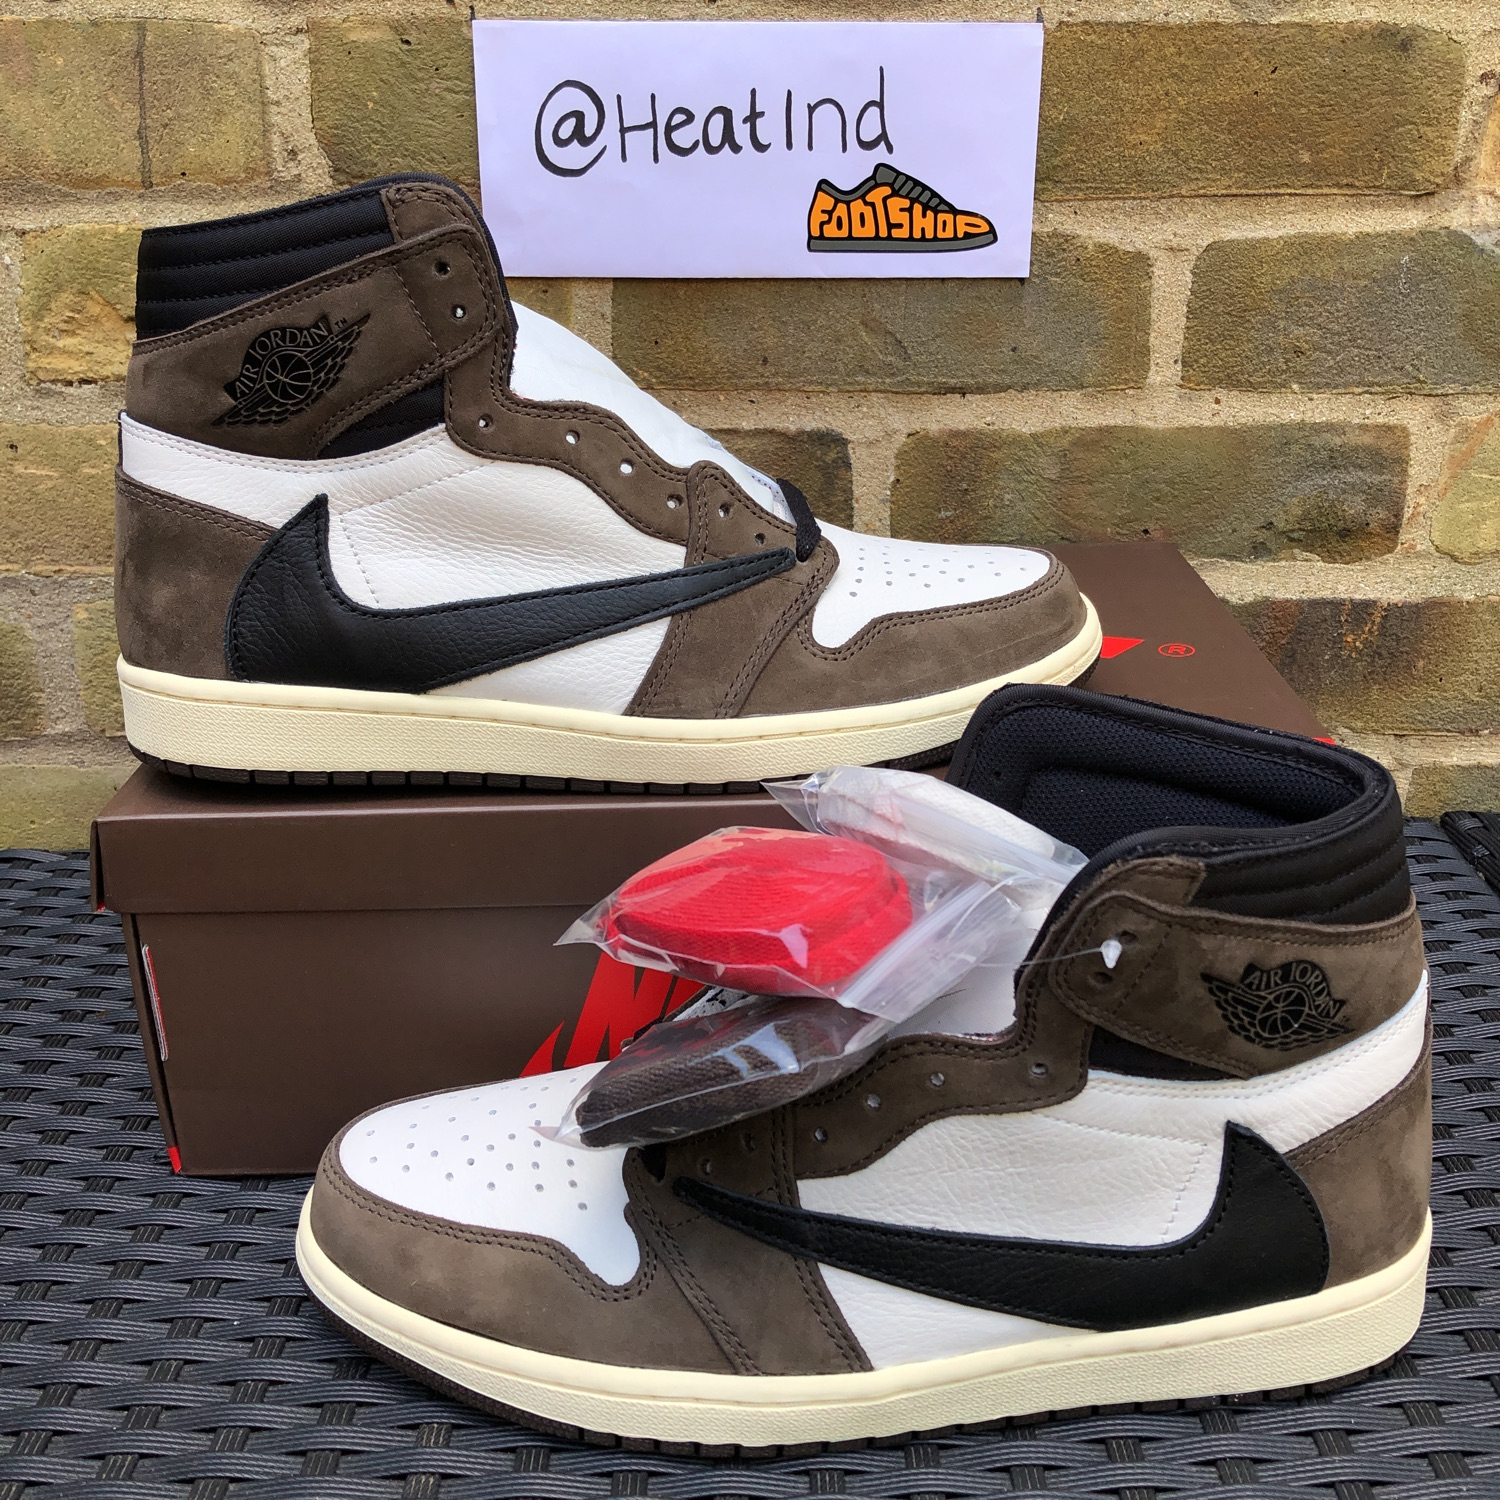 Air Jordan 1 High Og Travis Scott Cactus Jack